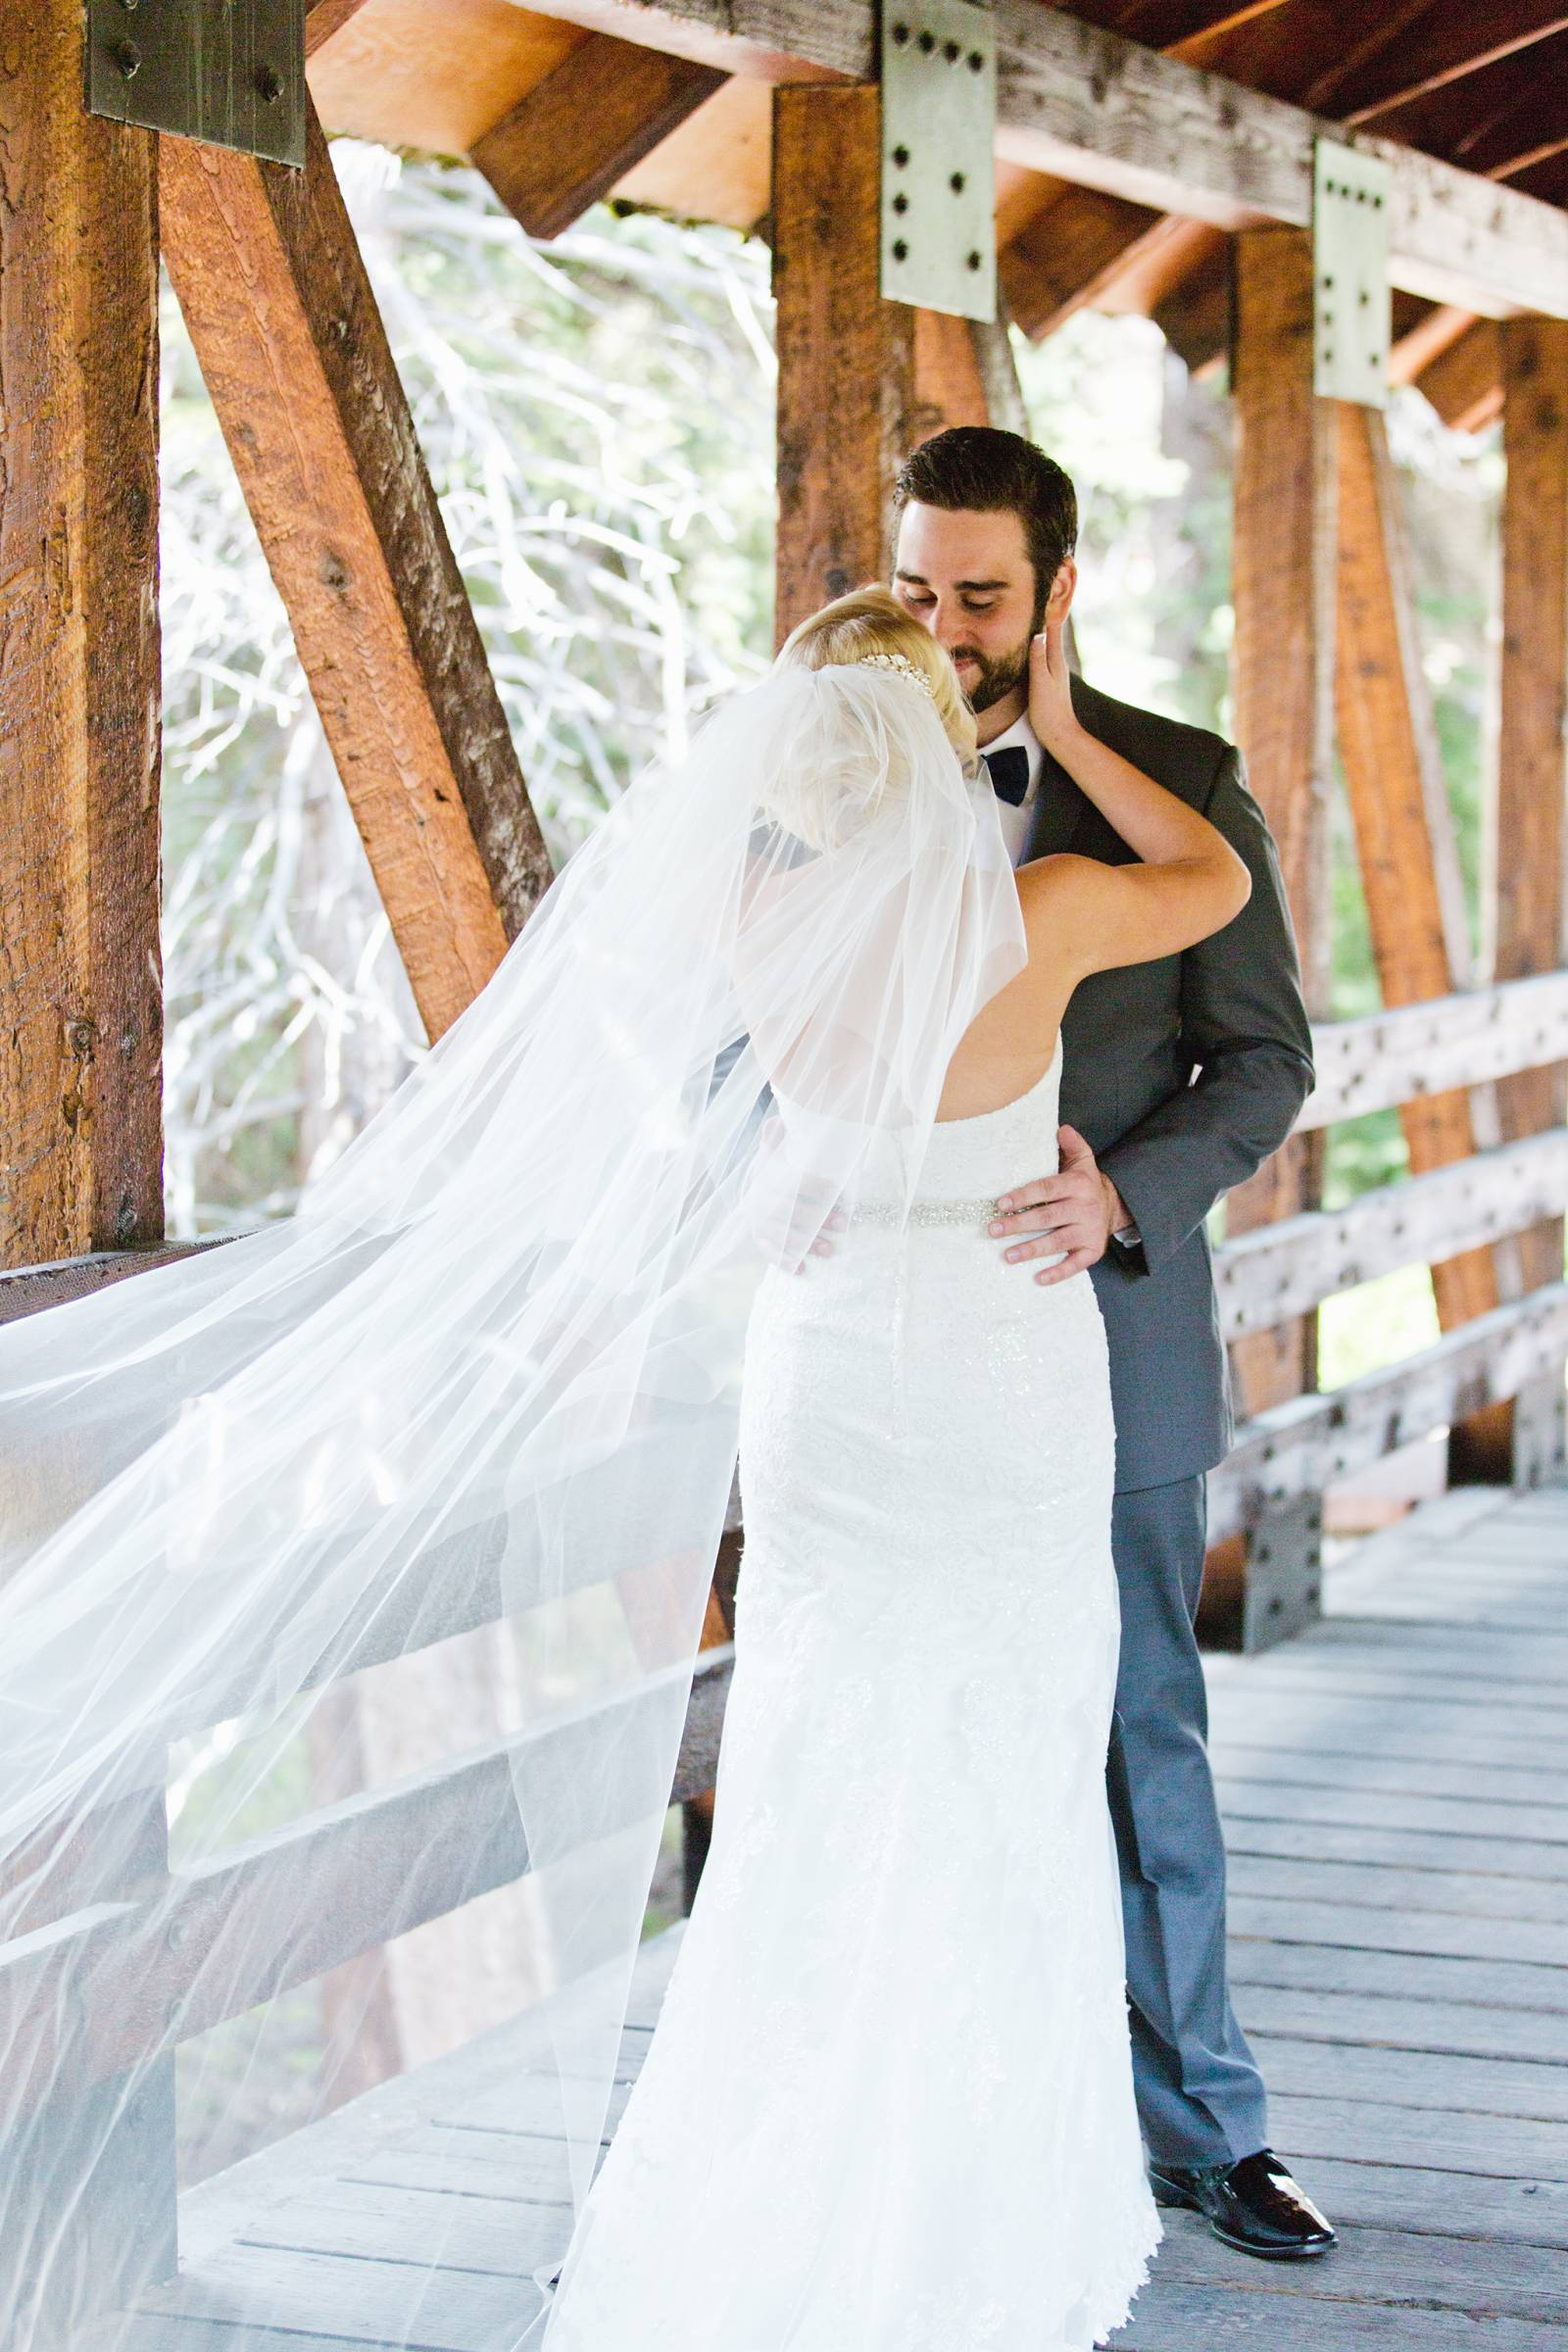 wedding day portrait of bride and groom | classy Rocky Mountain wedding in Vail, Colorado